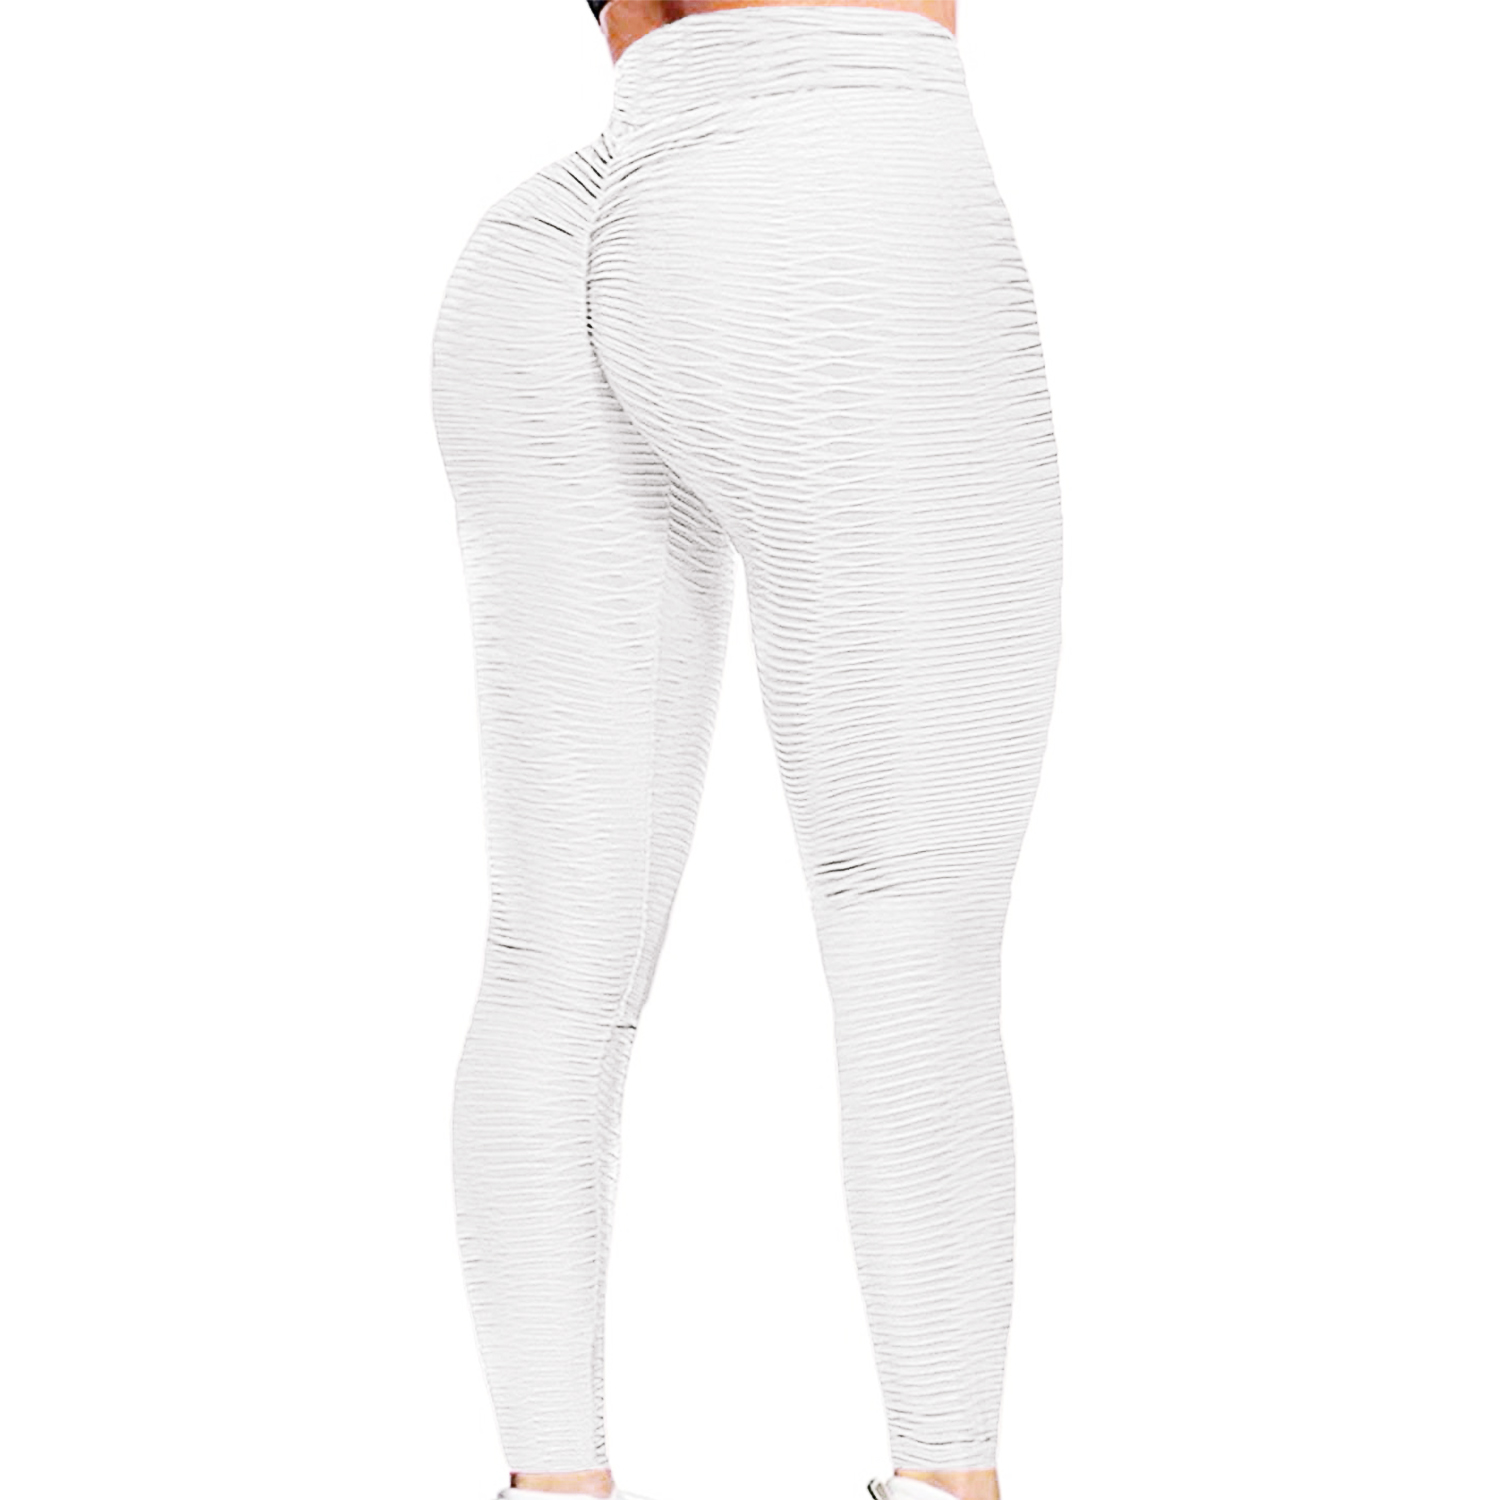 Womens High Waist Yoga Sport Shorts Ruched Push Up Leggings Workout Gym Pants H1